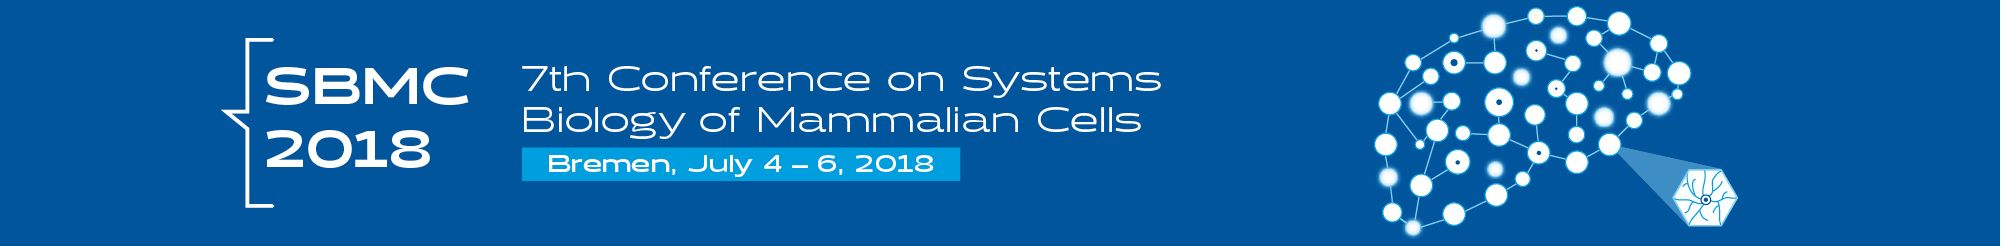 7th Conference on Systems Biology of Mammalian Cells